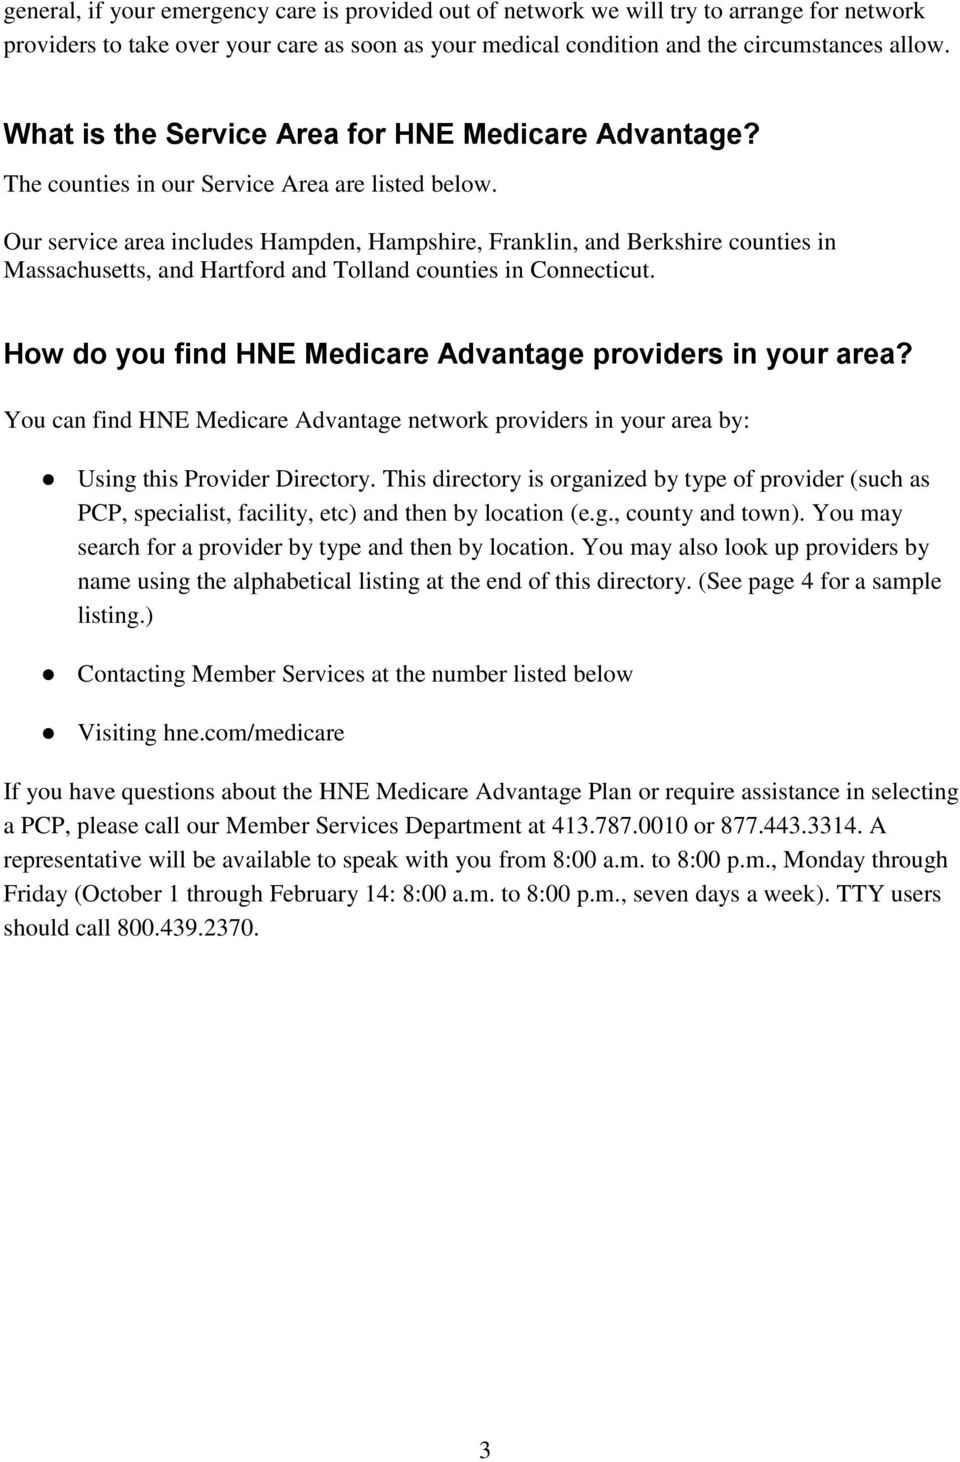 Health New England Medicare Advantage Provider Directory  Pdf. Child Support San Diego Model Home Decorating. I T Consulting Services Best Report Software. Internet Service Providers Spokane Wa. Loyalty Programs Software Install Gas Furnace. Hot To Invest In Stocks Woody And Sons Moving. Hyper V Virtual Machine Manager. Can You Pay A Credit Card With A Credit Card. West Chester University Field Hockey